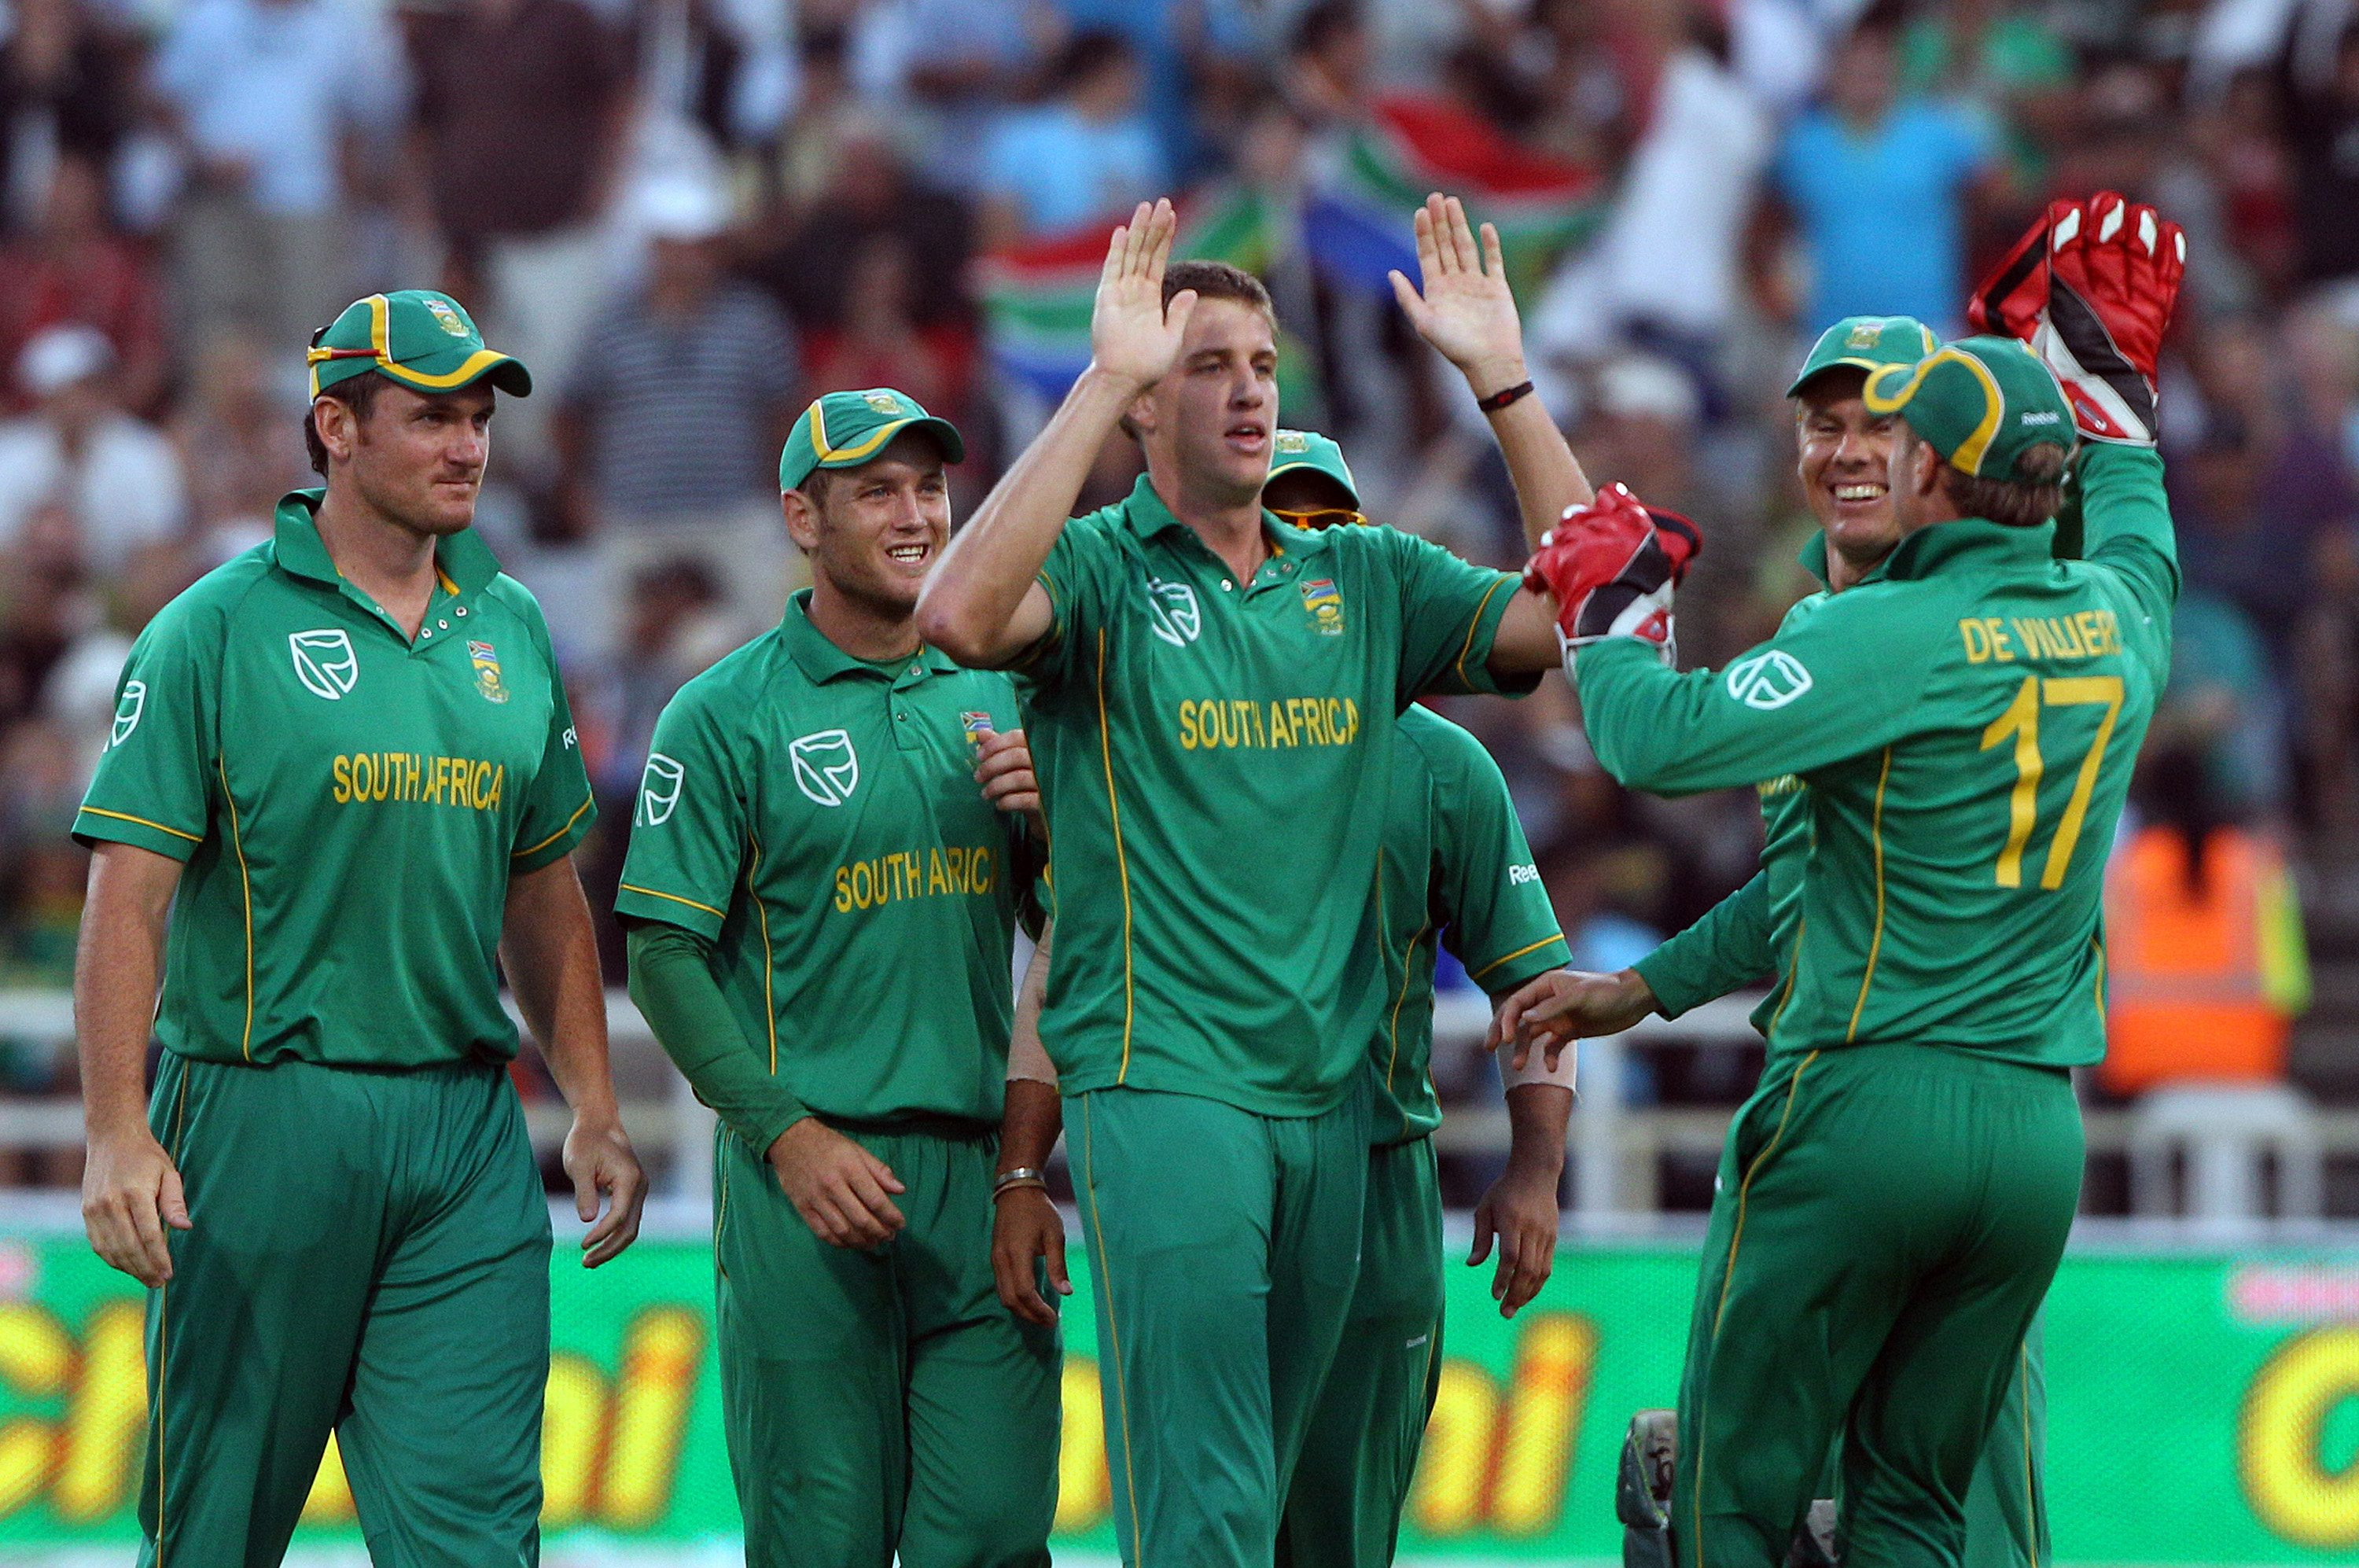 South Africa thrash UAE by 146 runs ICC World Cup 2015 AB de Villiers Morne Morkel shine